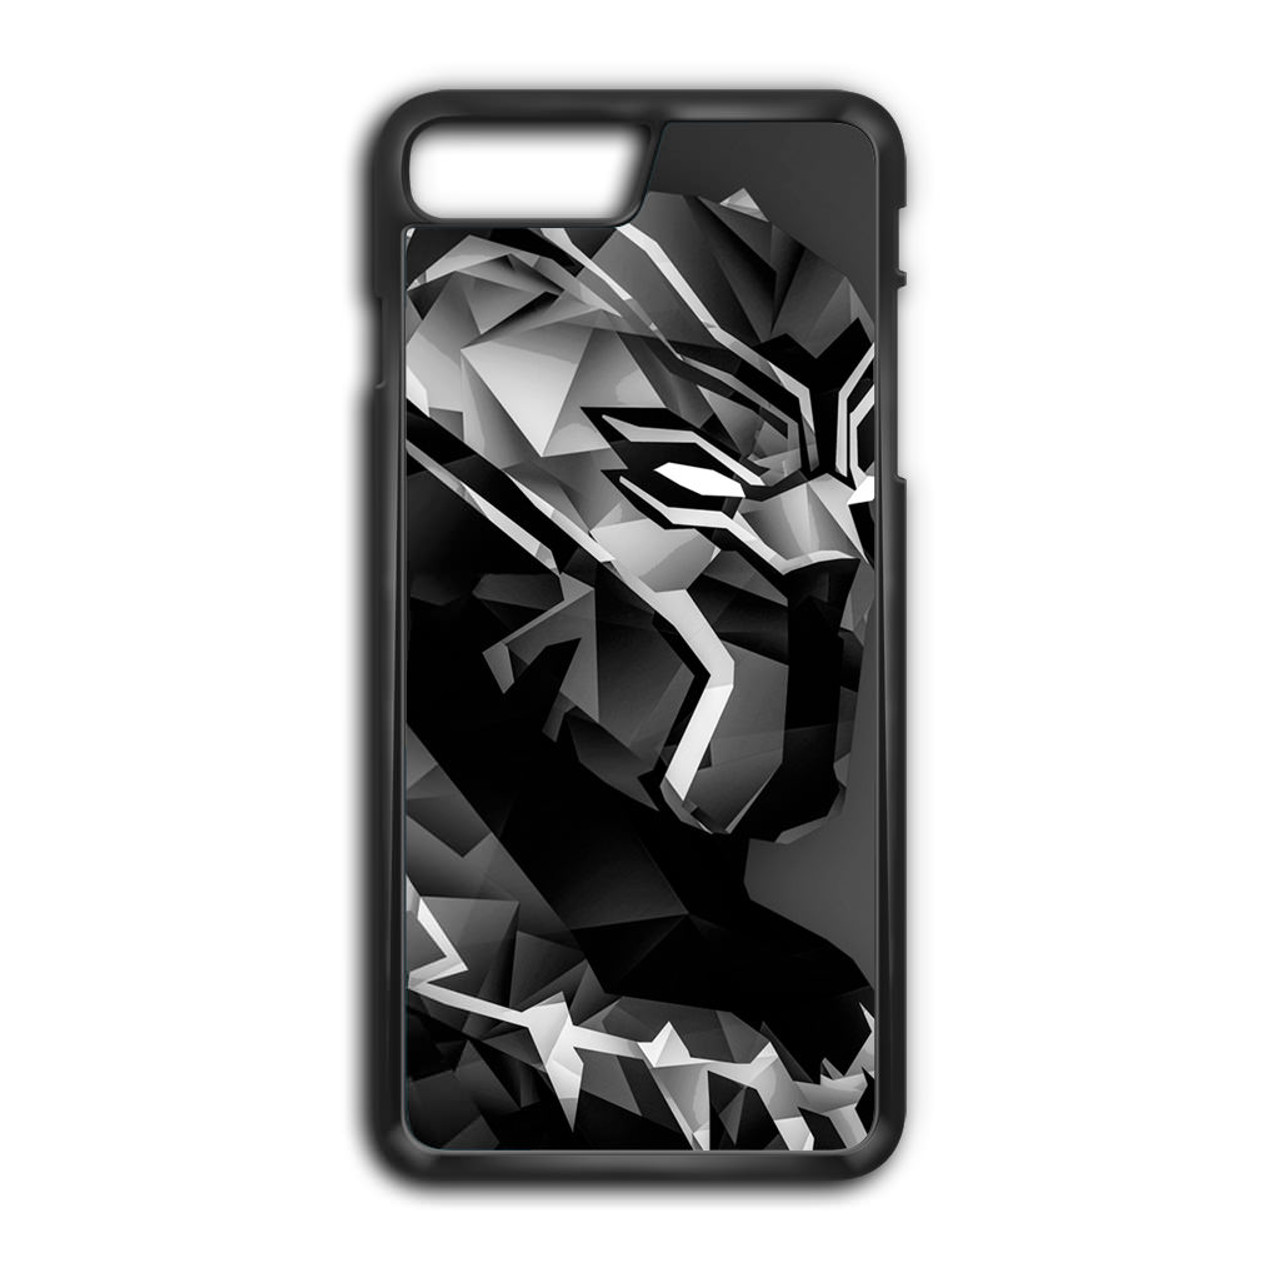 huge discount 2b90a 845a6 Black Panther Digital Art iPhone 7 Plus Case